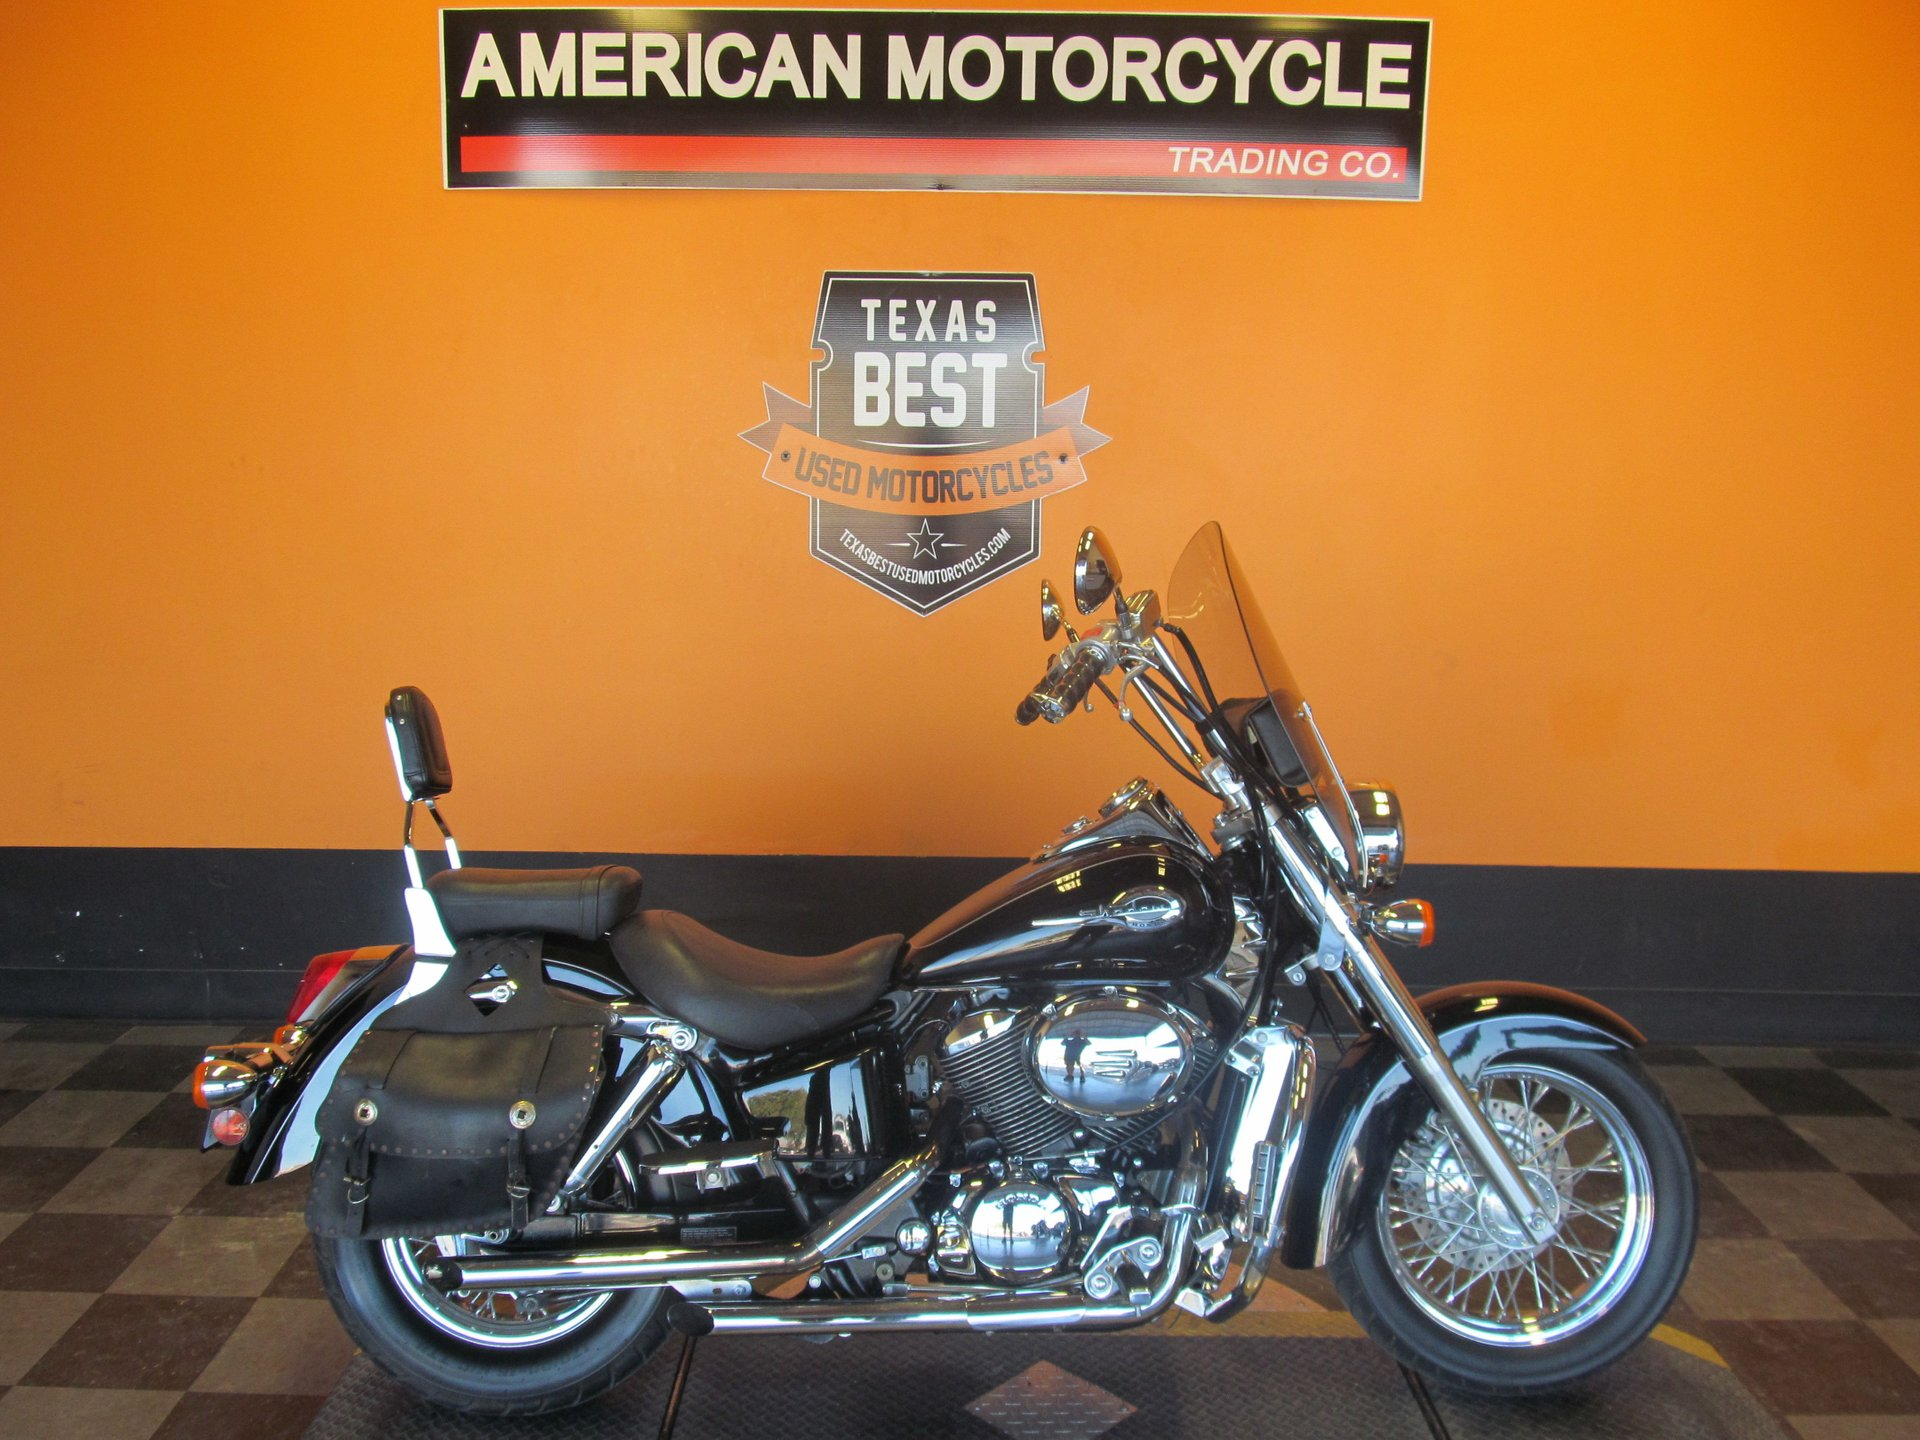 2002 honda shadow ace vt750cd